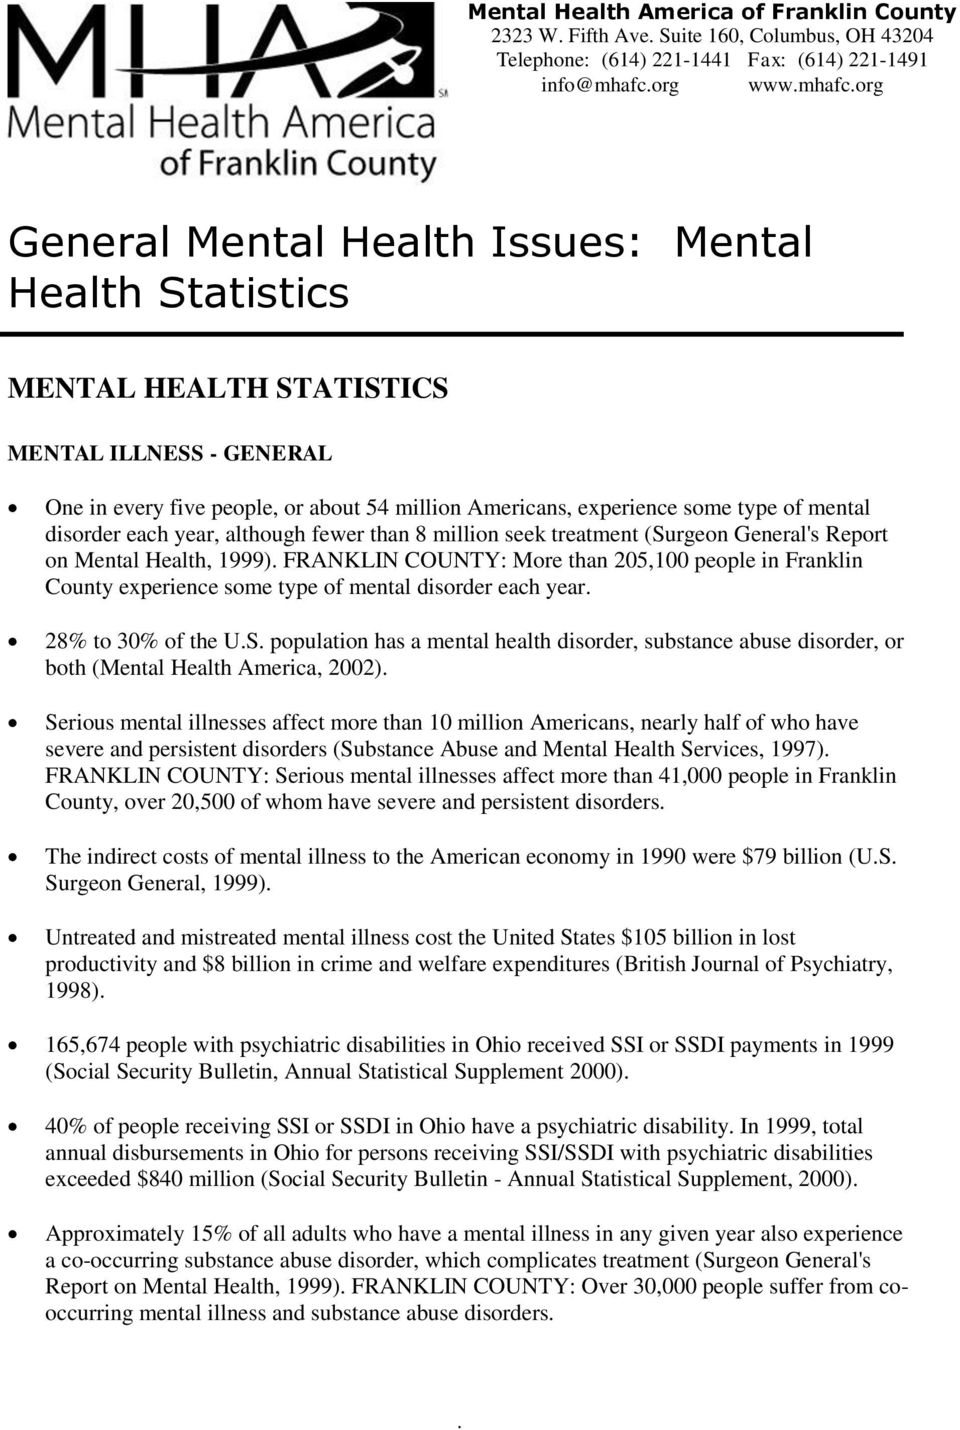 million seek treatment (Surgeon General's Report on Mental Health, 1999) FRANKLIN COUNTY: More than 205,100 people in Franklin County experience some type of mental disorder each year 28% to 30% of